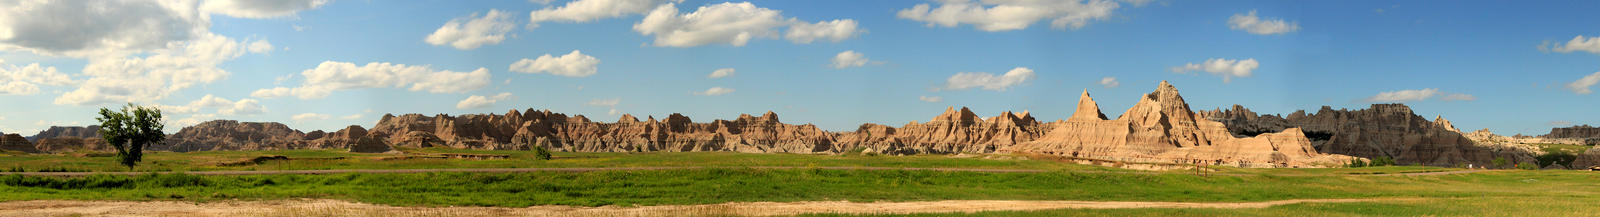 the badlands panorama by idrawbad